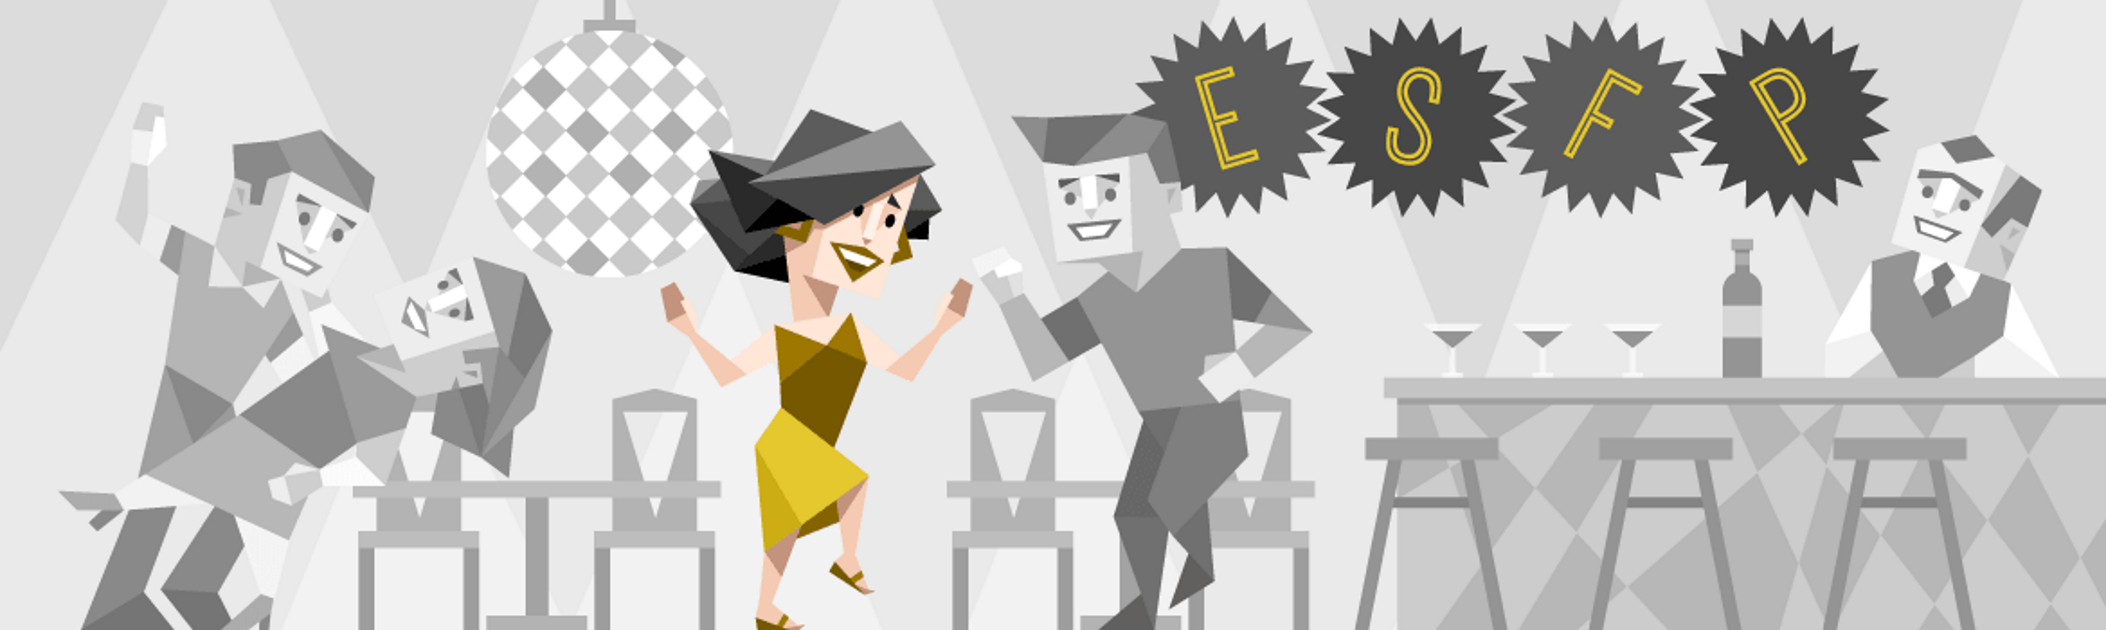 ESFP Personality – Conclusion | 16Personalities